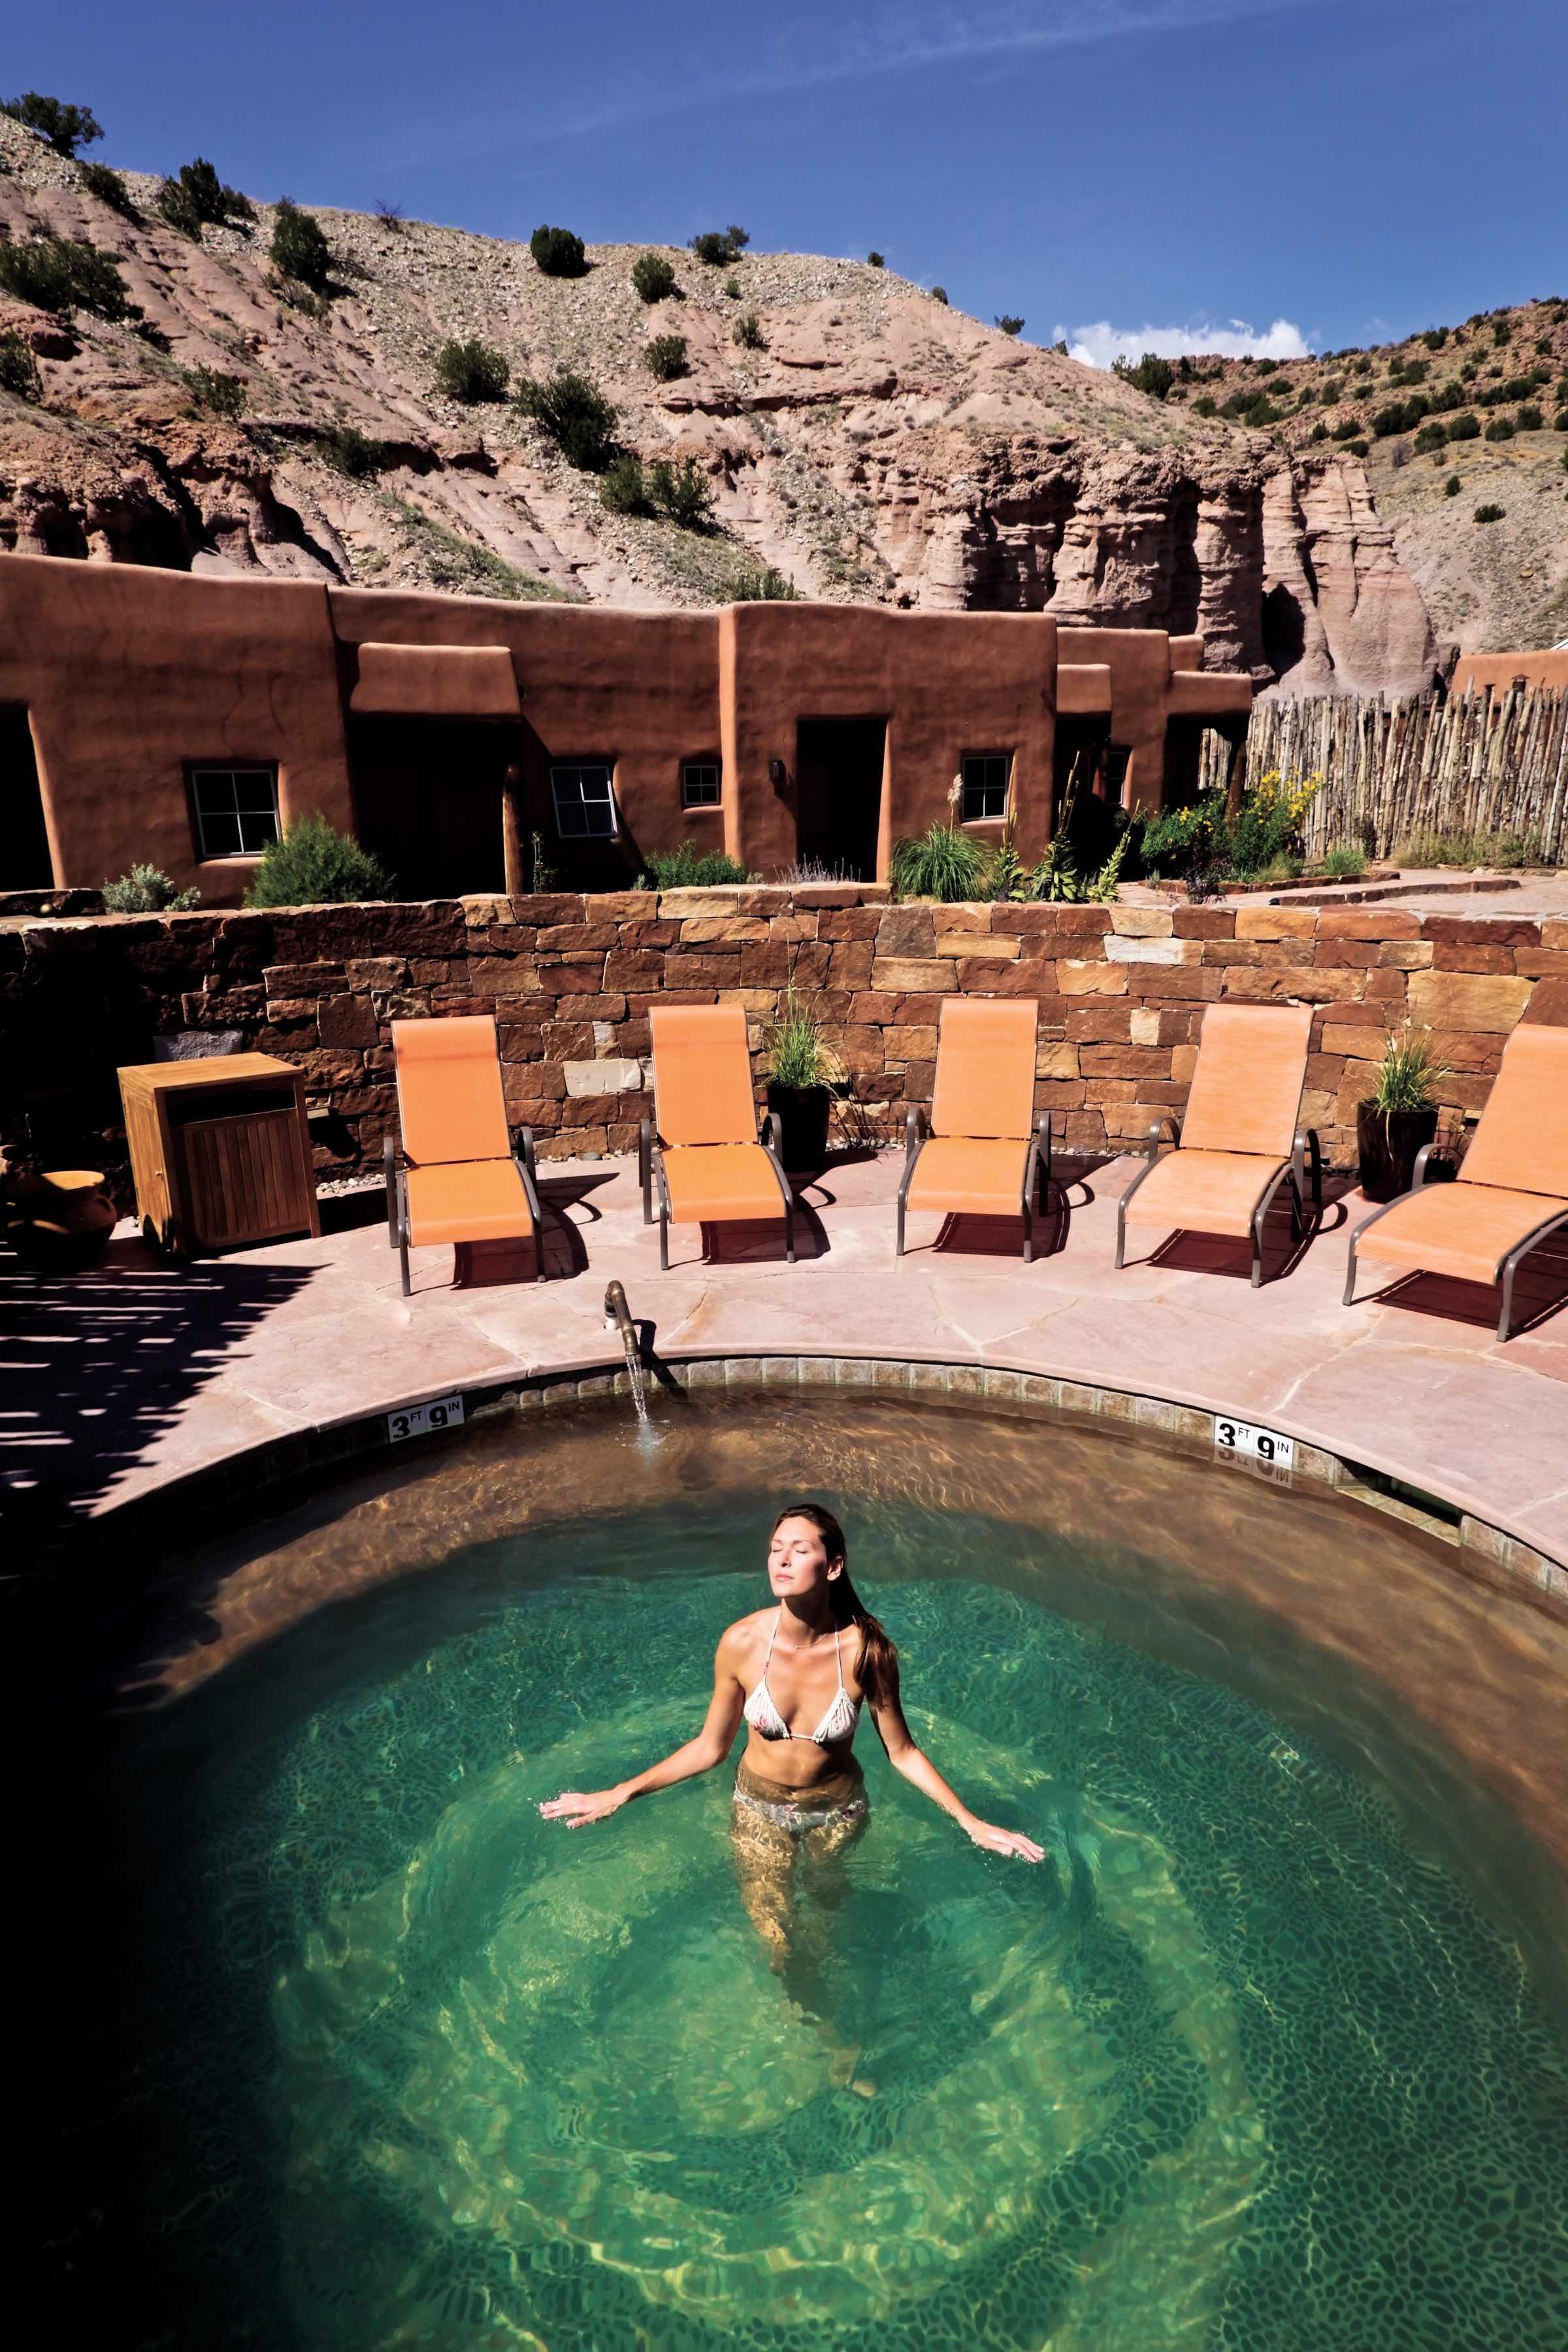 ojo caliente sex personals Ocate new mexico swingers personals  hi im kind of new to this somewhat and im looking to explore more into it such as couples and group sex im  ojo caliente.